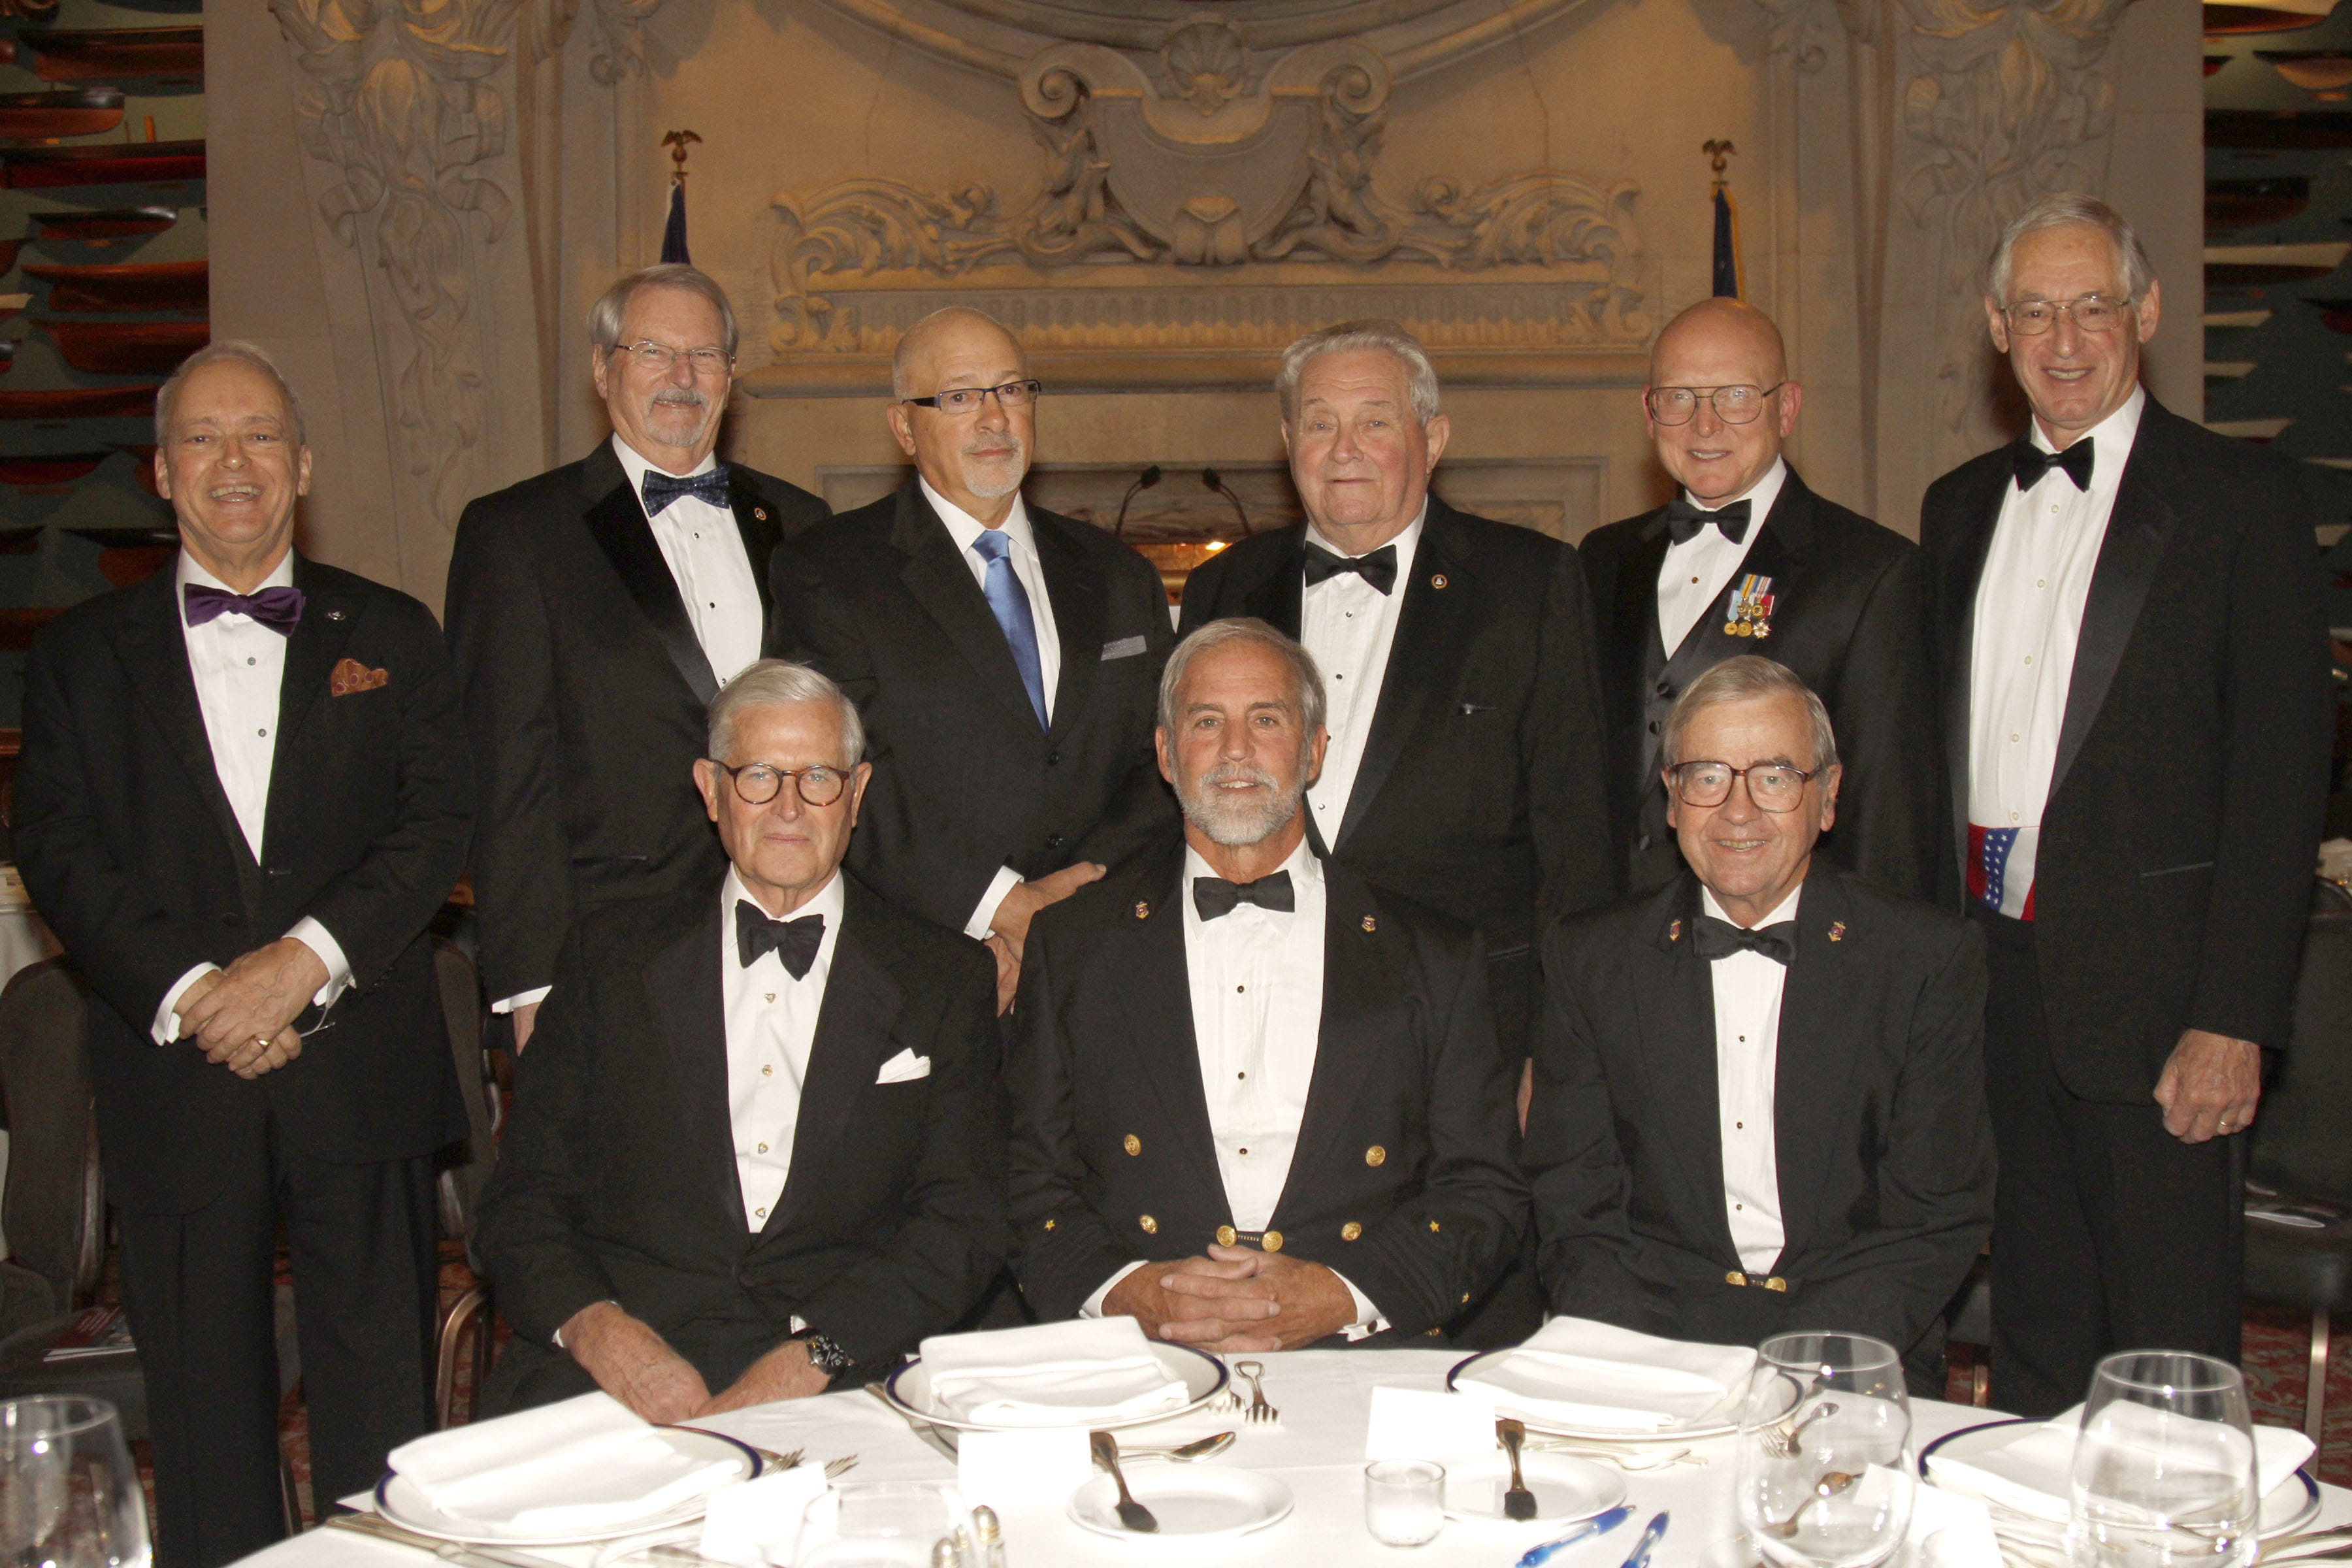 Photo by Allison Lucas.  (Front Row, l-r) James J. Coleman Jr., Rives Potts, George W. Carmany III.   (Back Row, l-r) Clay Maitland, Ronald L. Oswald, Daniel J. Basta, Howard Slotnick, Admiral Robert J. Papp Jr., USCG (Ret.), and Richard du Moulin.